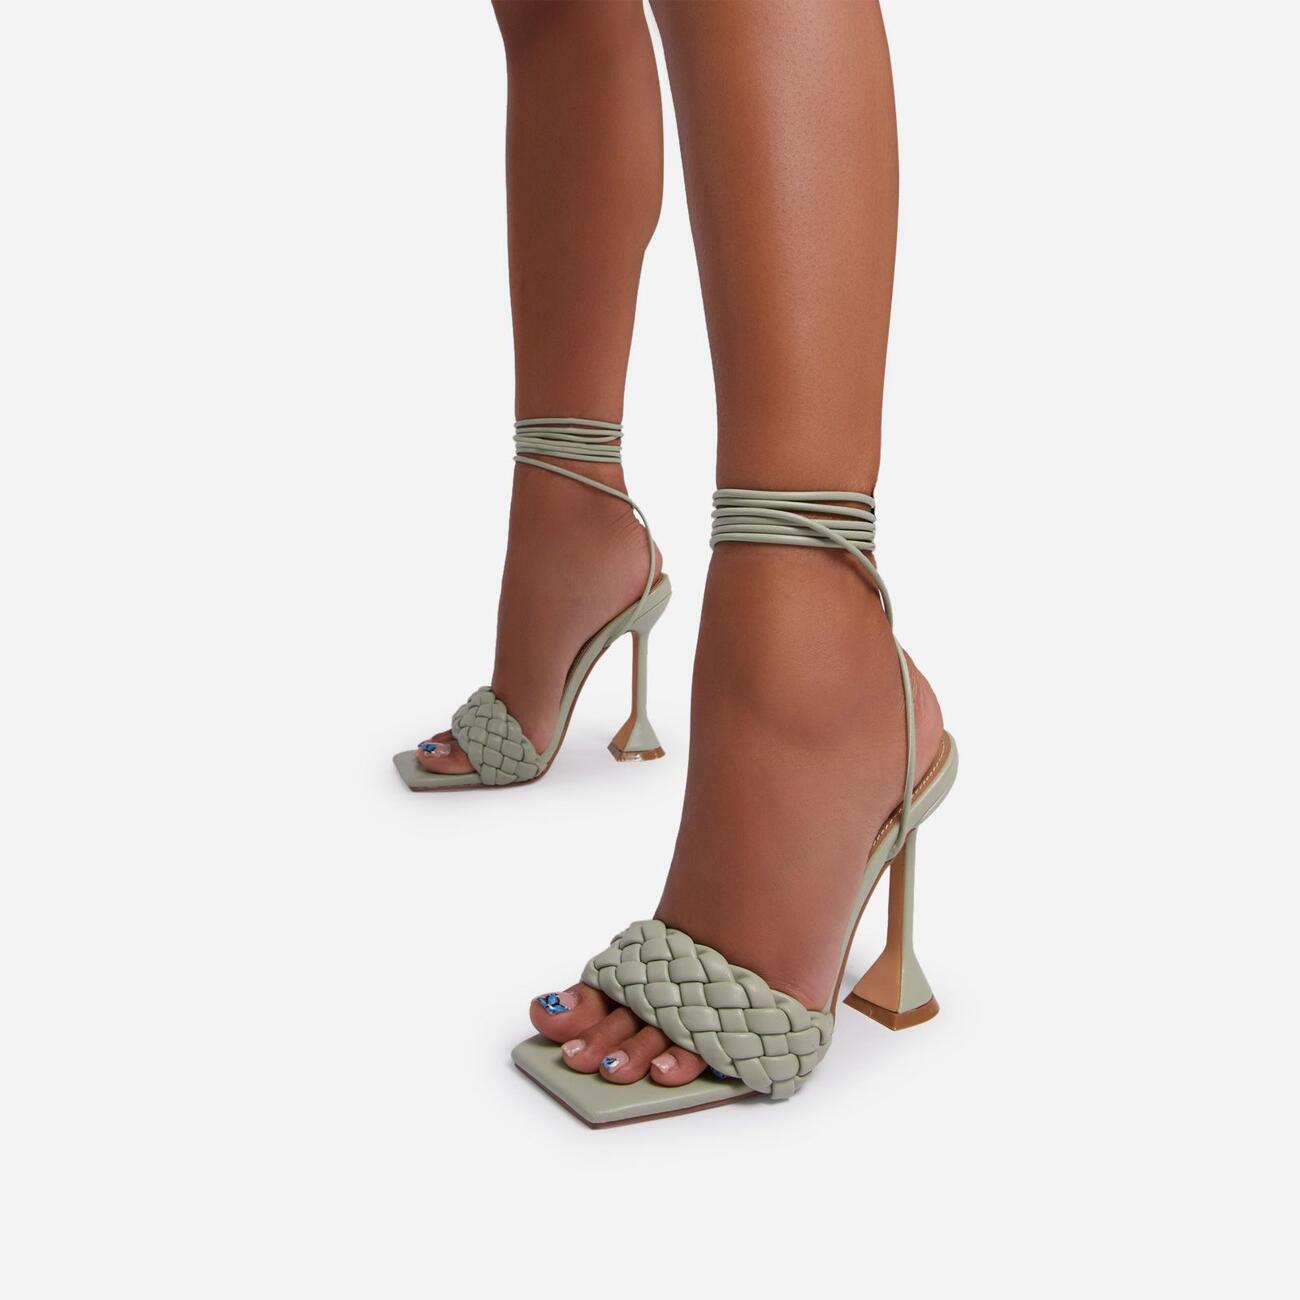 Master Lace Up Square Toe Woven Pyramid Heel In Sage Green Faux Leather Image 3